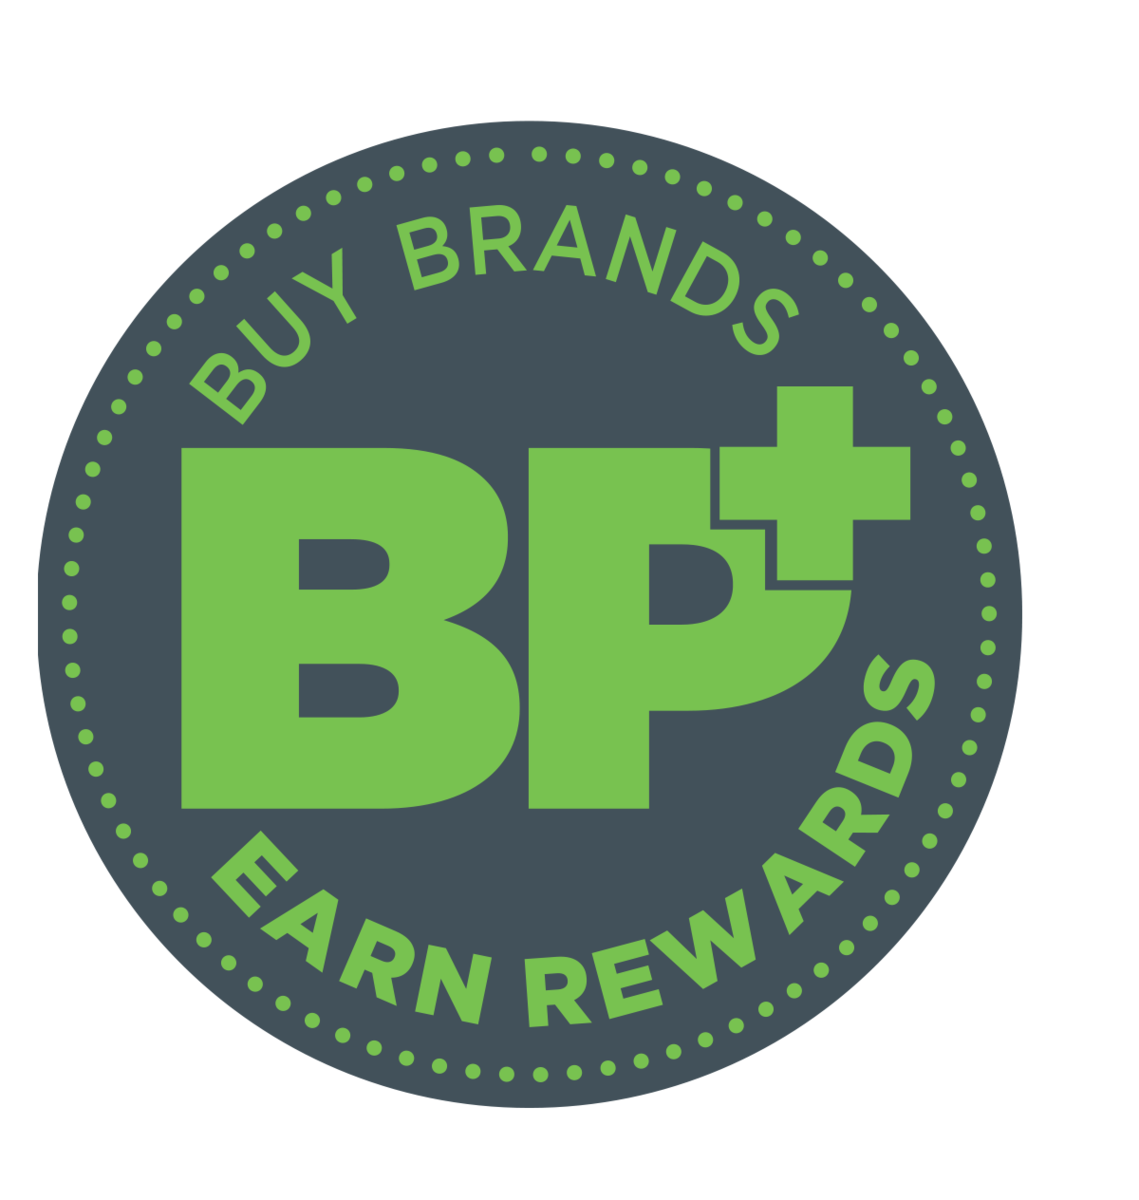 Buy Brand Points Plus Products and earn rewards